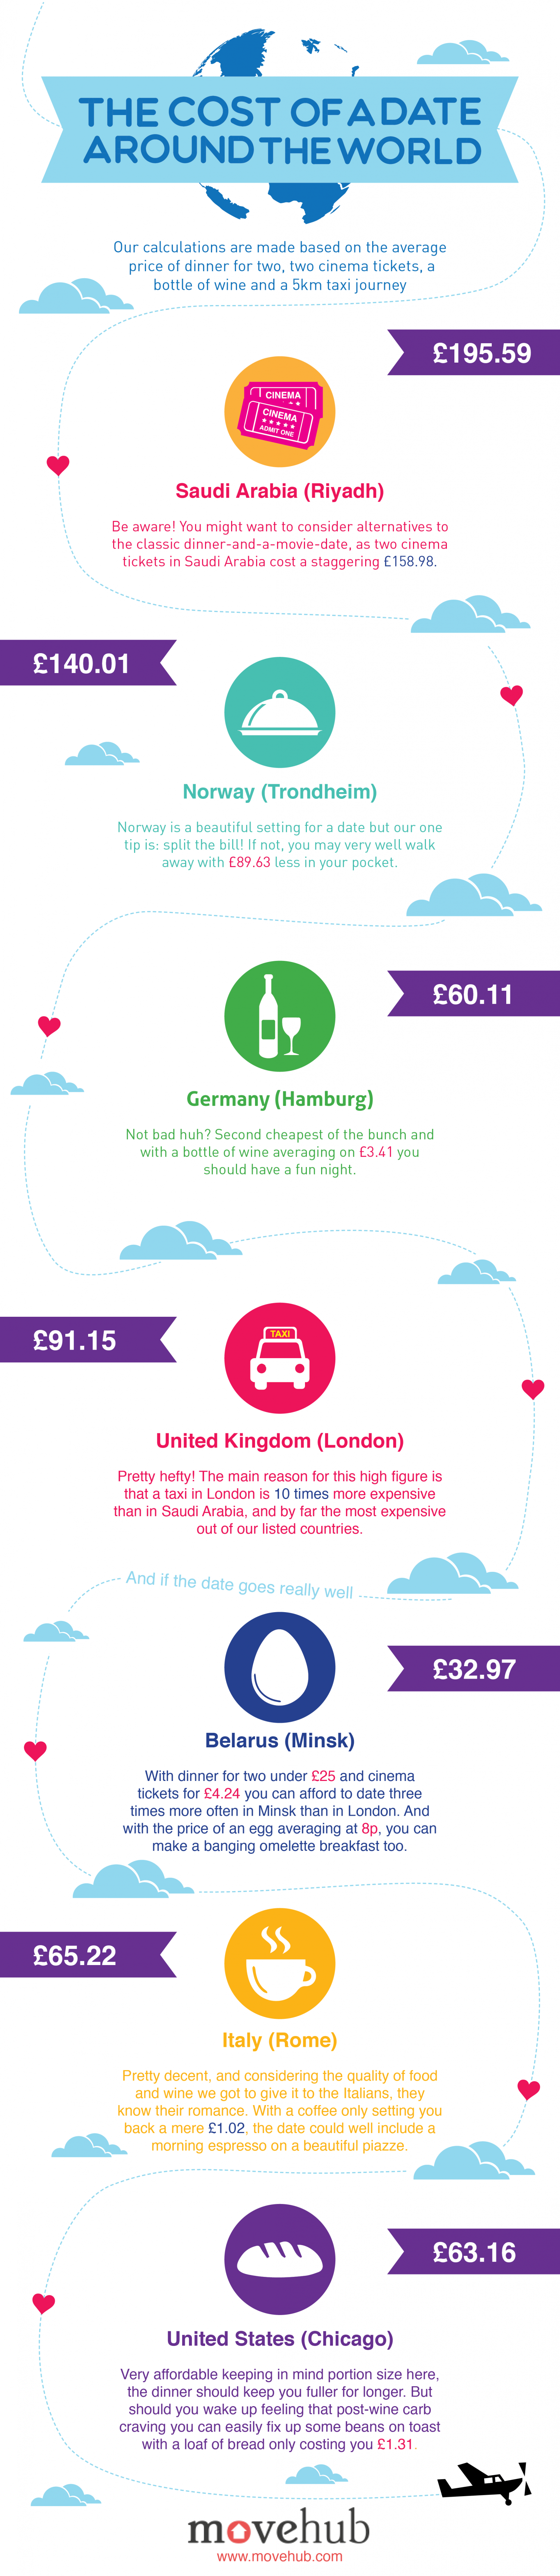 The Cost of a Date Around the World Infographic